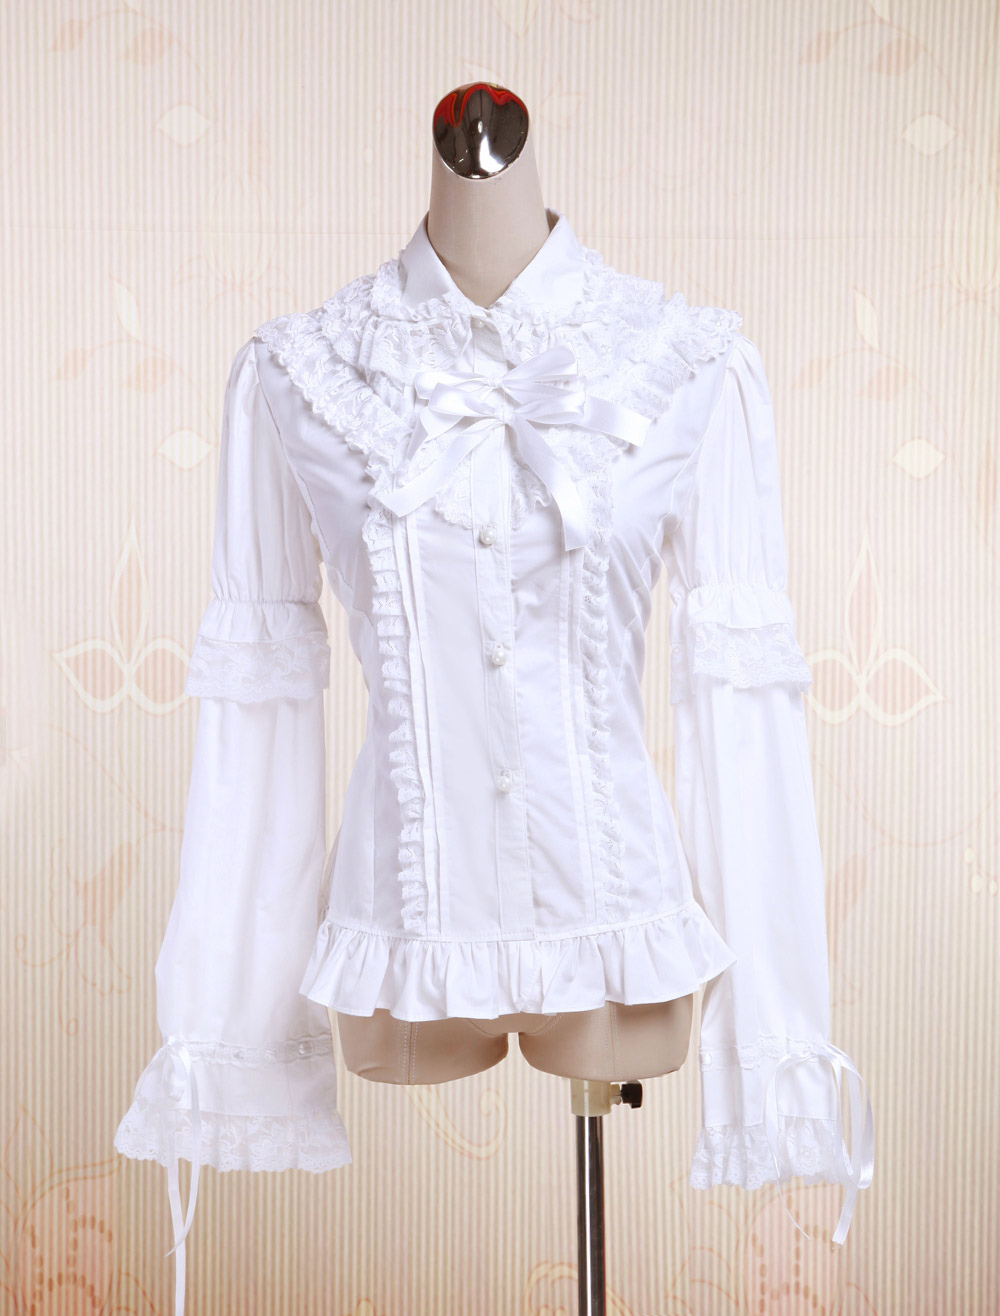 56ad0a428f7 Lolitashow Pure White Cotton Lolita Blouse Long Sleeves Lace Trim Lace Bows  - Lolitashow.com